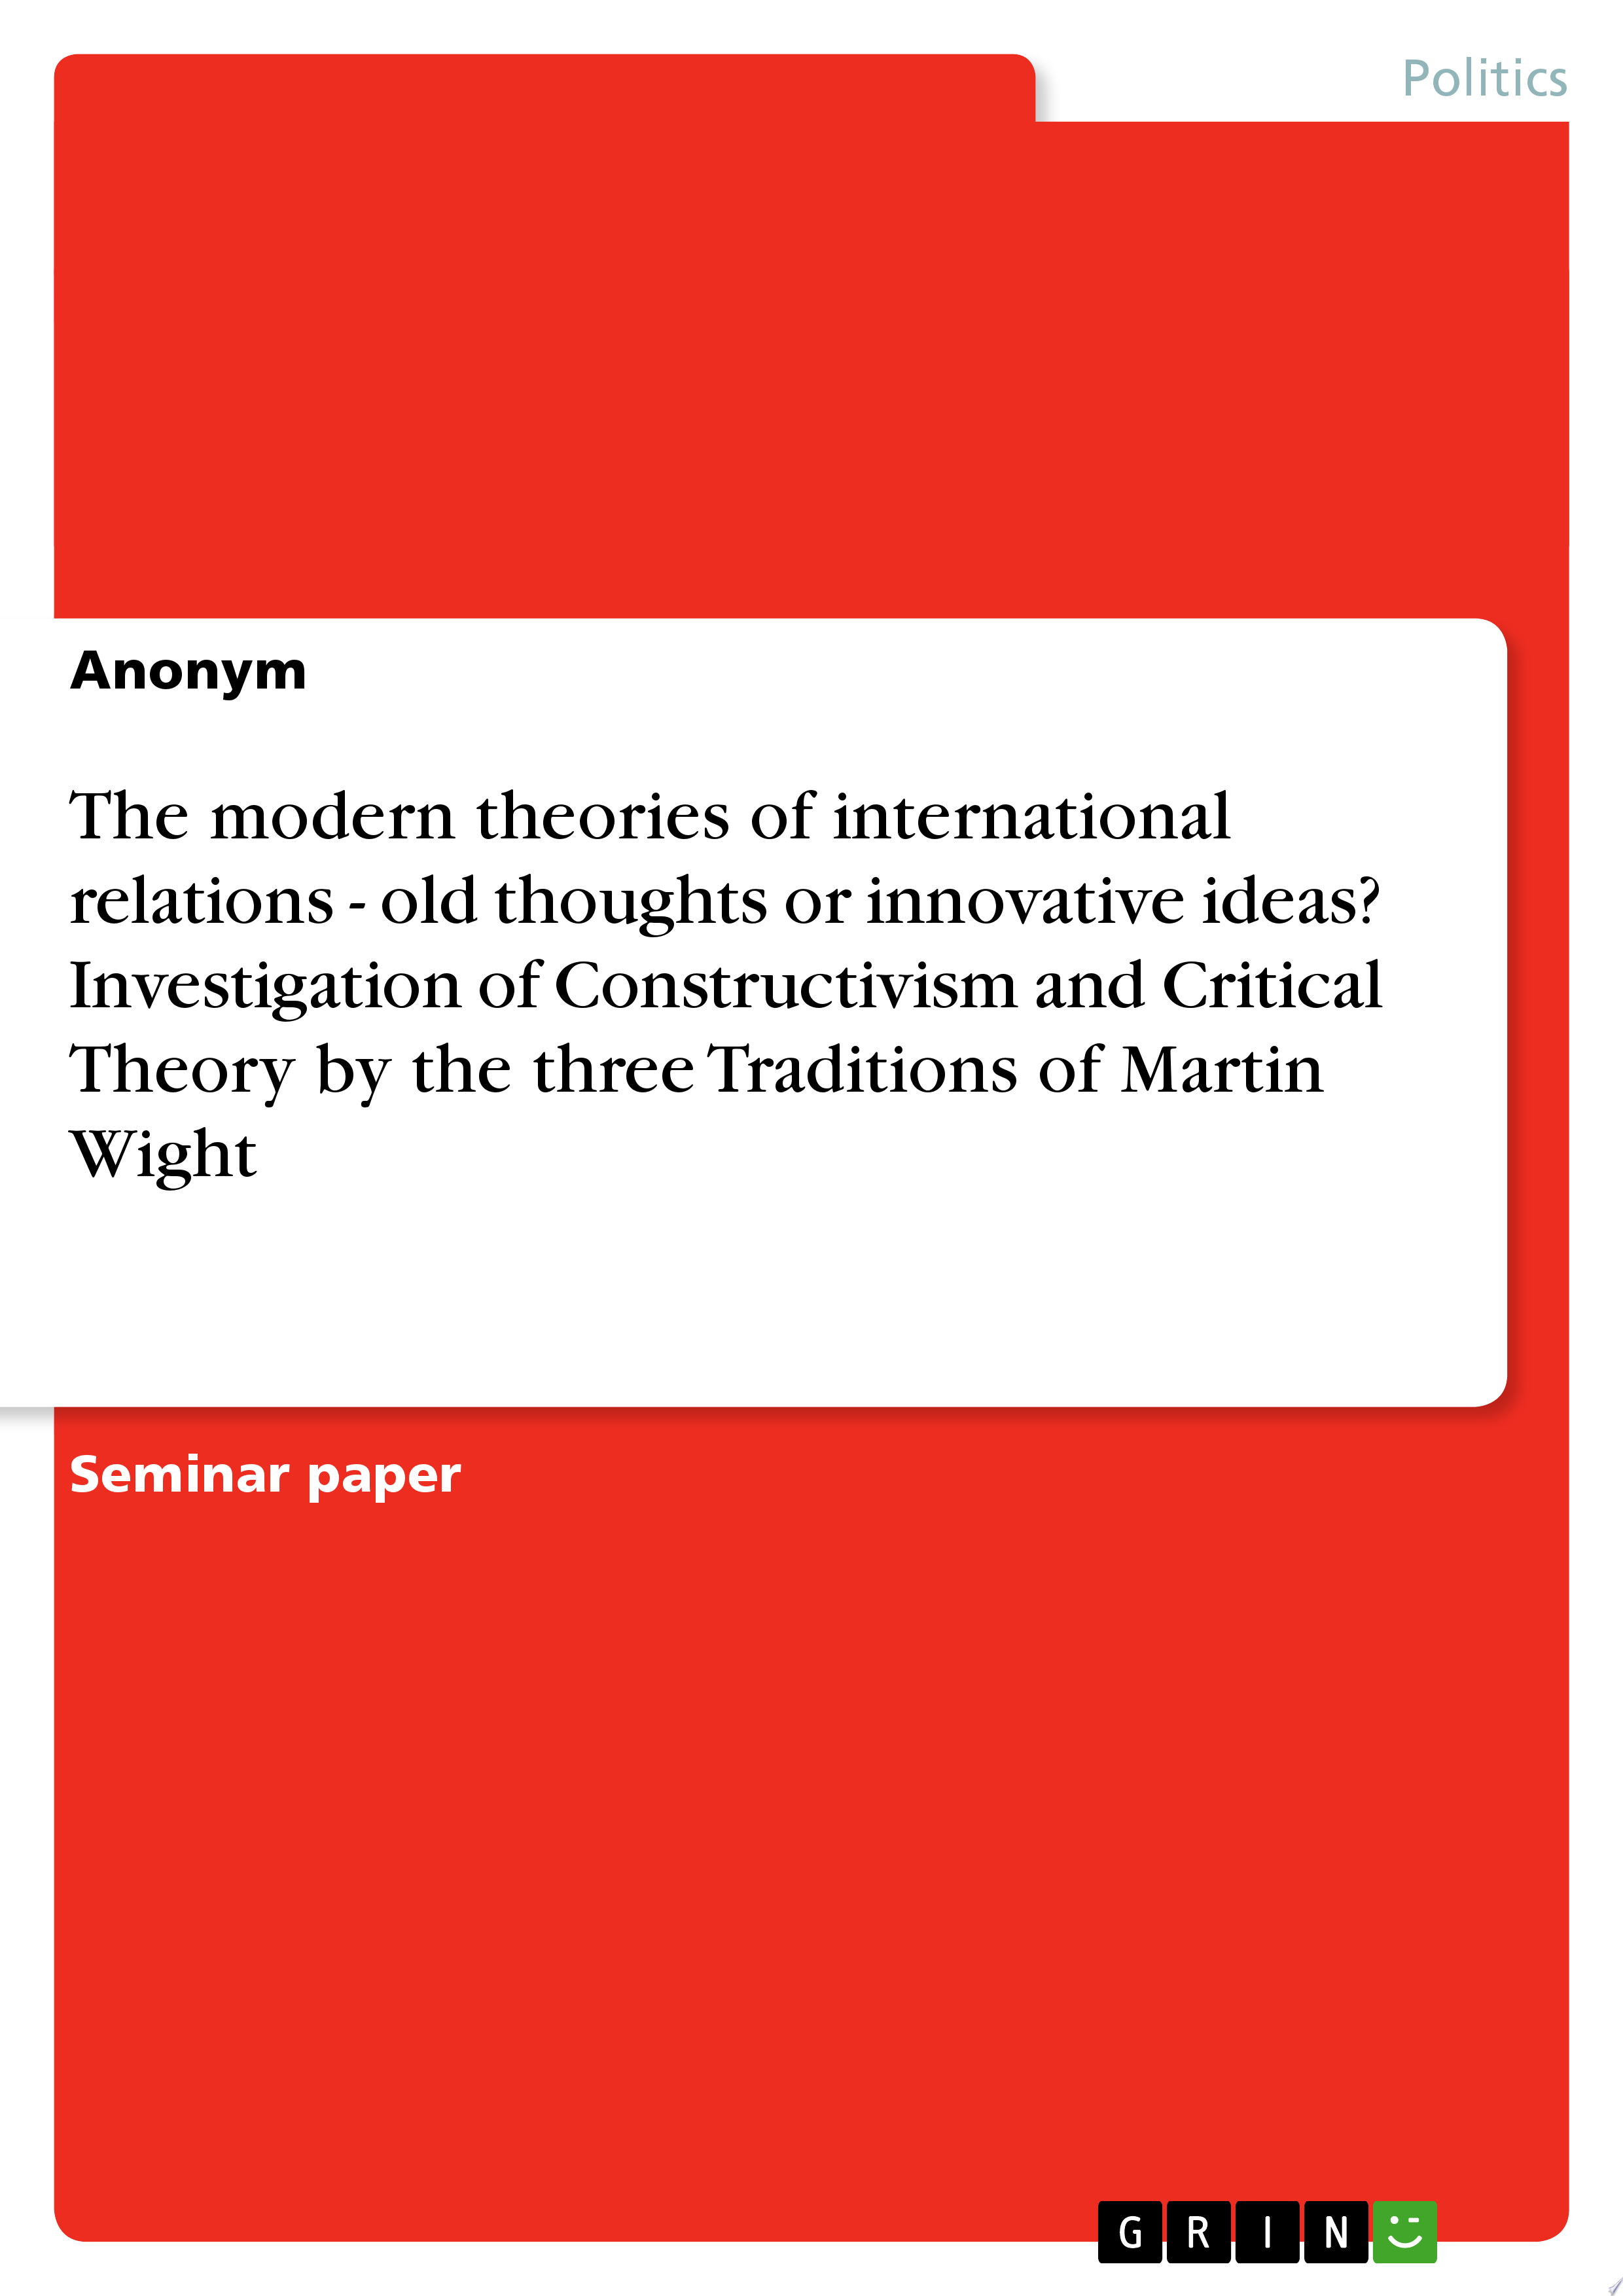 The modern theories of international relations   old thoughts or innovative ideas  Investigation of Constructivism and Critical Theory by the three Traditions of Martin Wight